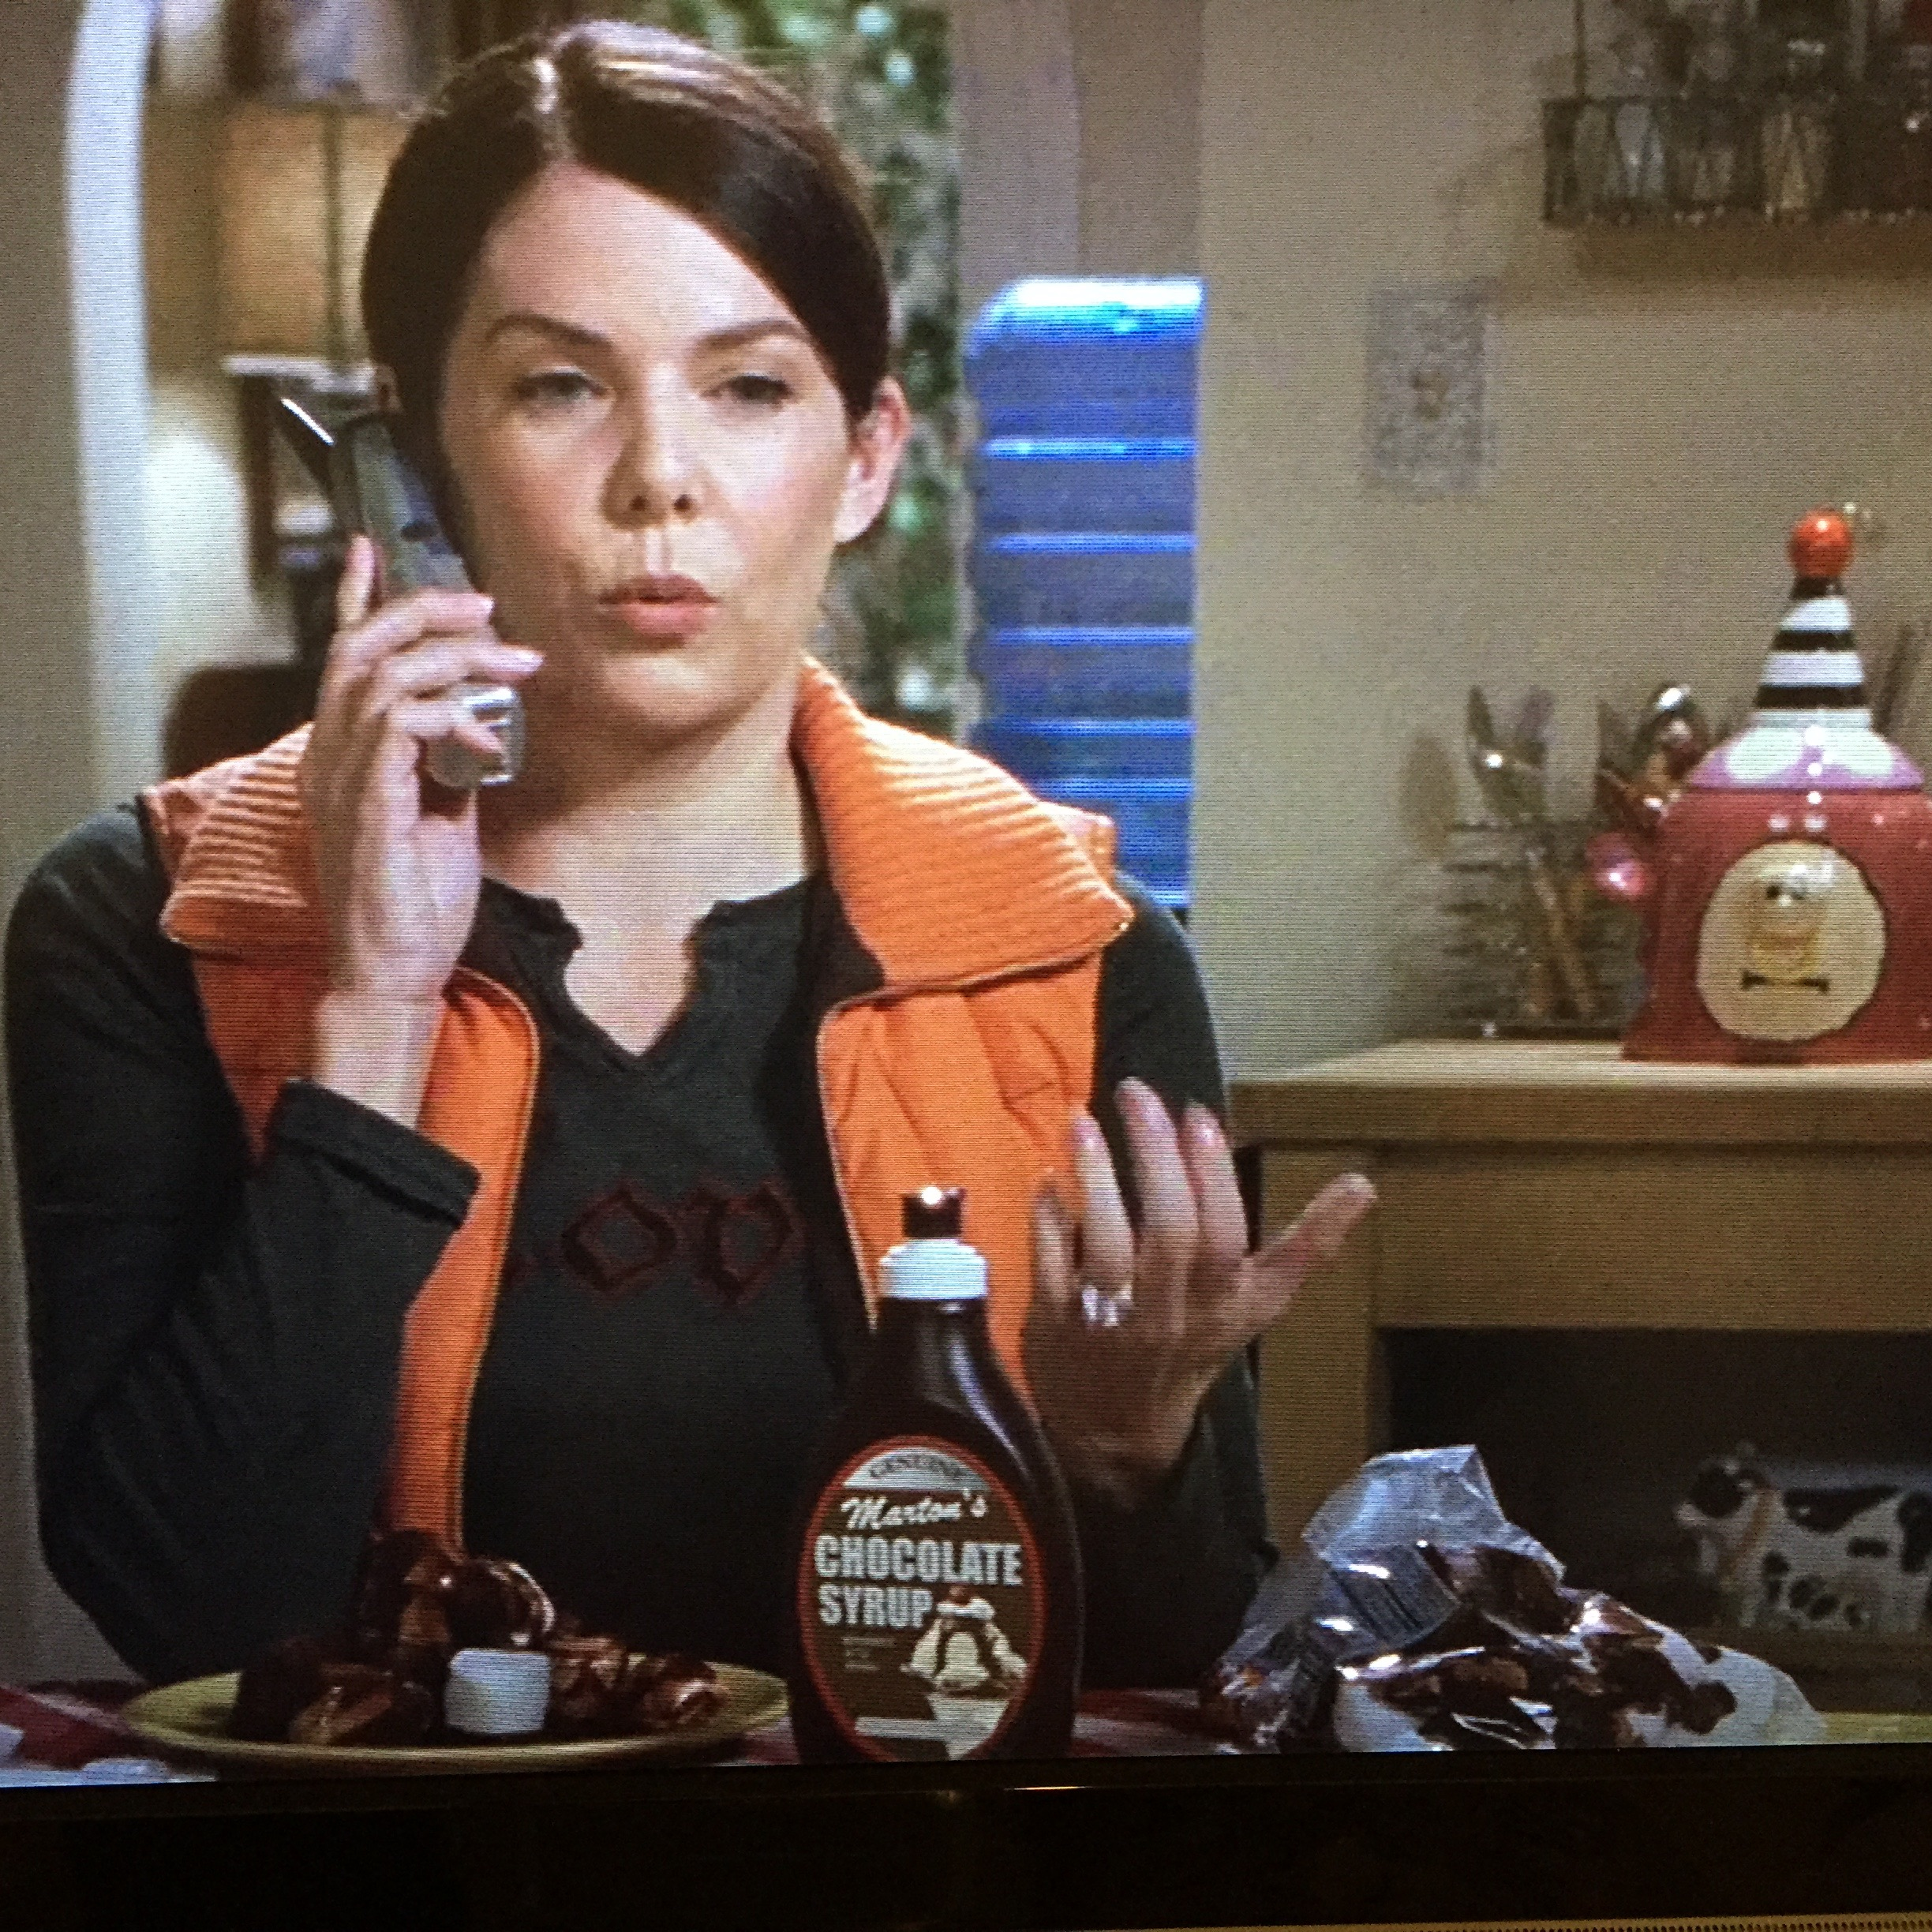 August 9, 2015- I just HAD to include this. One of my favorite scenes in the whole series- Lorelai eating chocolate syrup-covered marshmallows!!